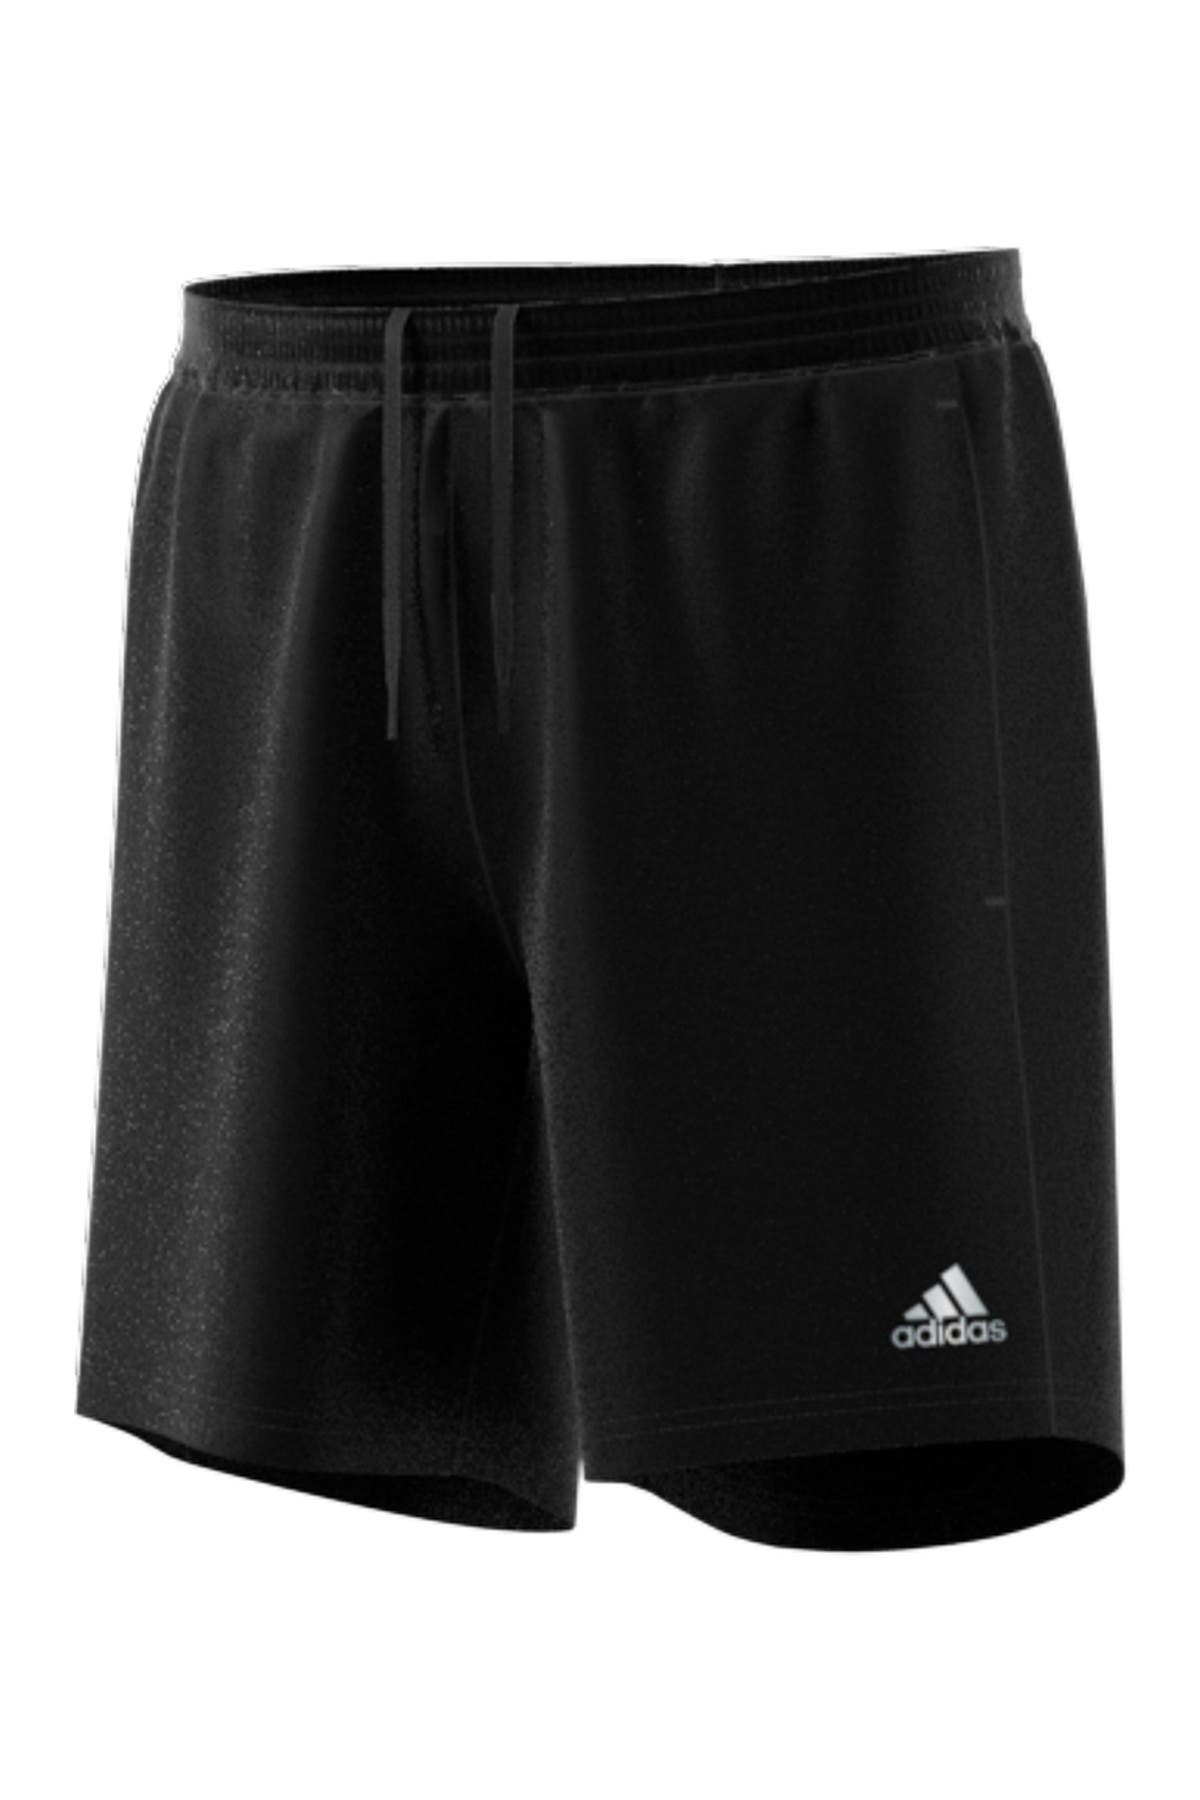 Image of adidas Run It Shorts